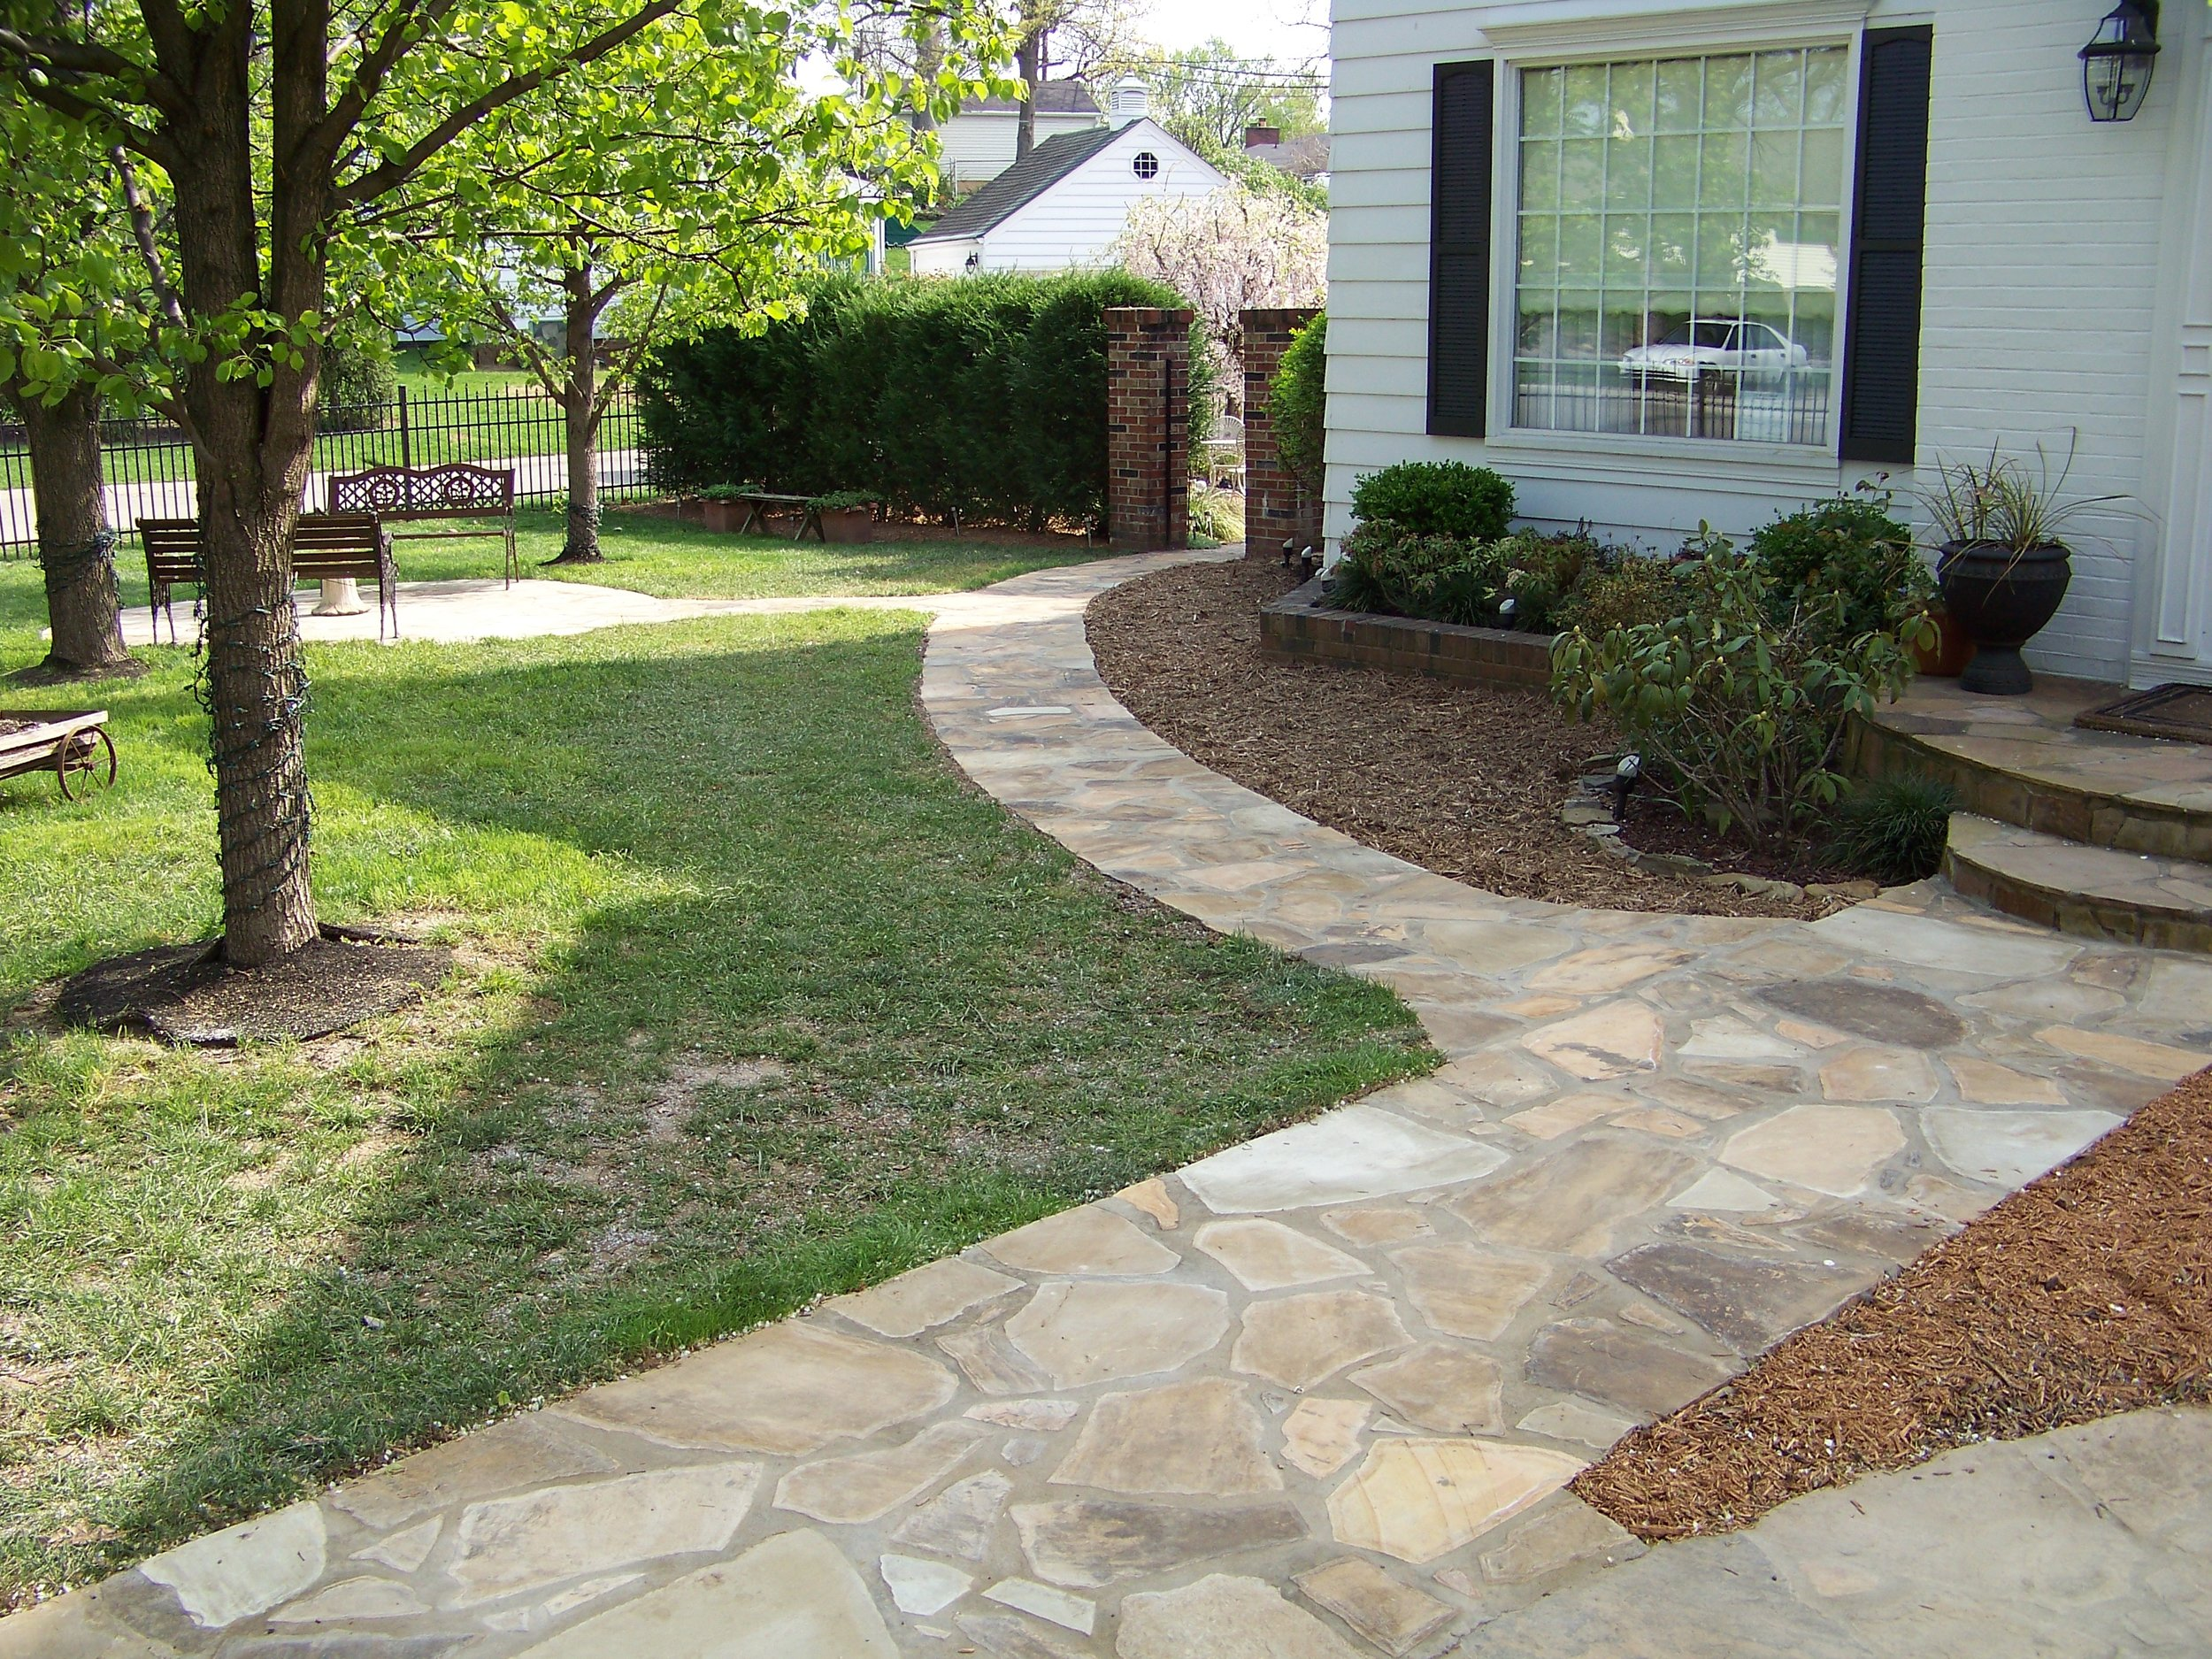 Decorative stone walkway and setting area